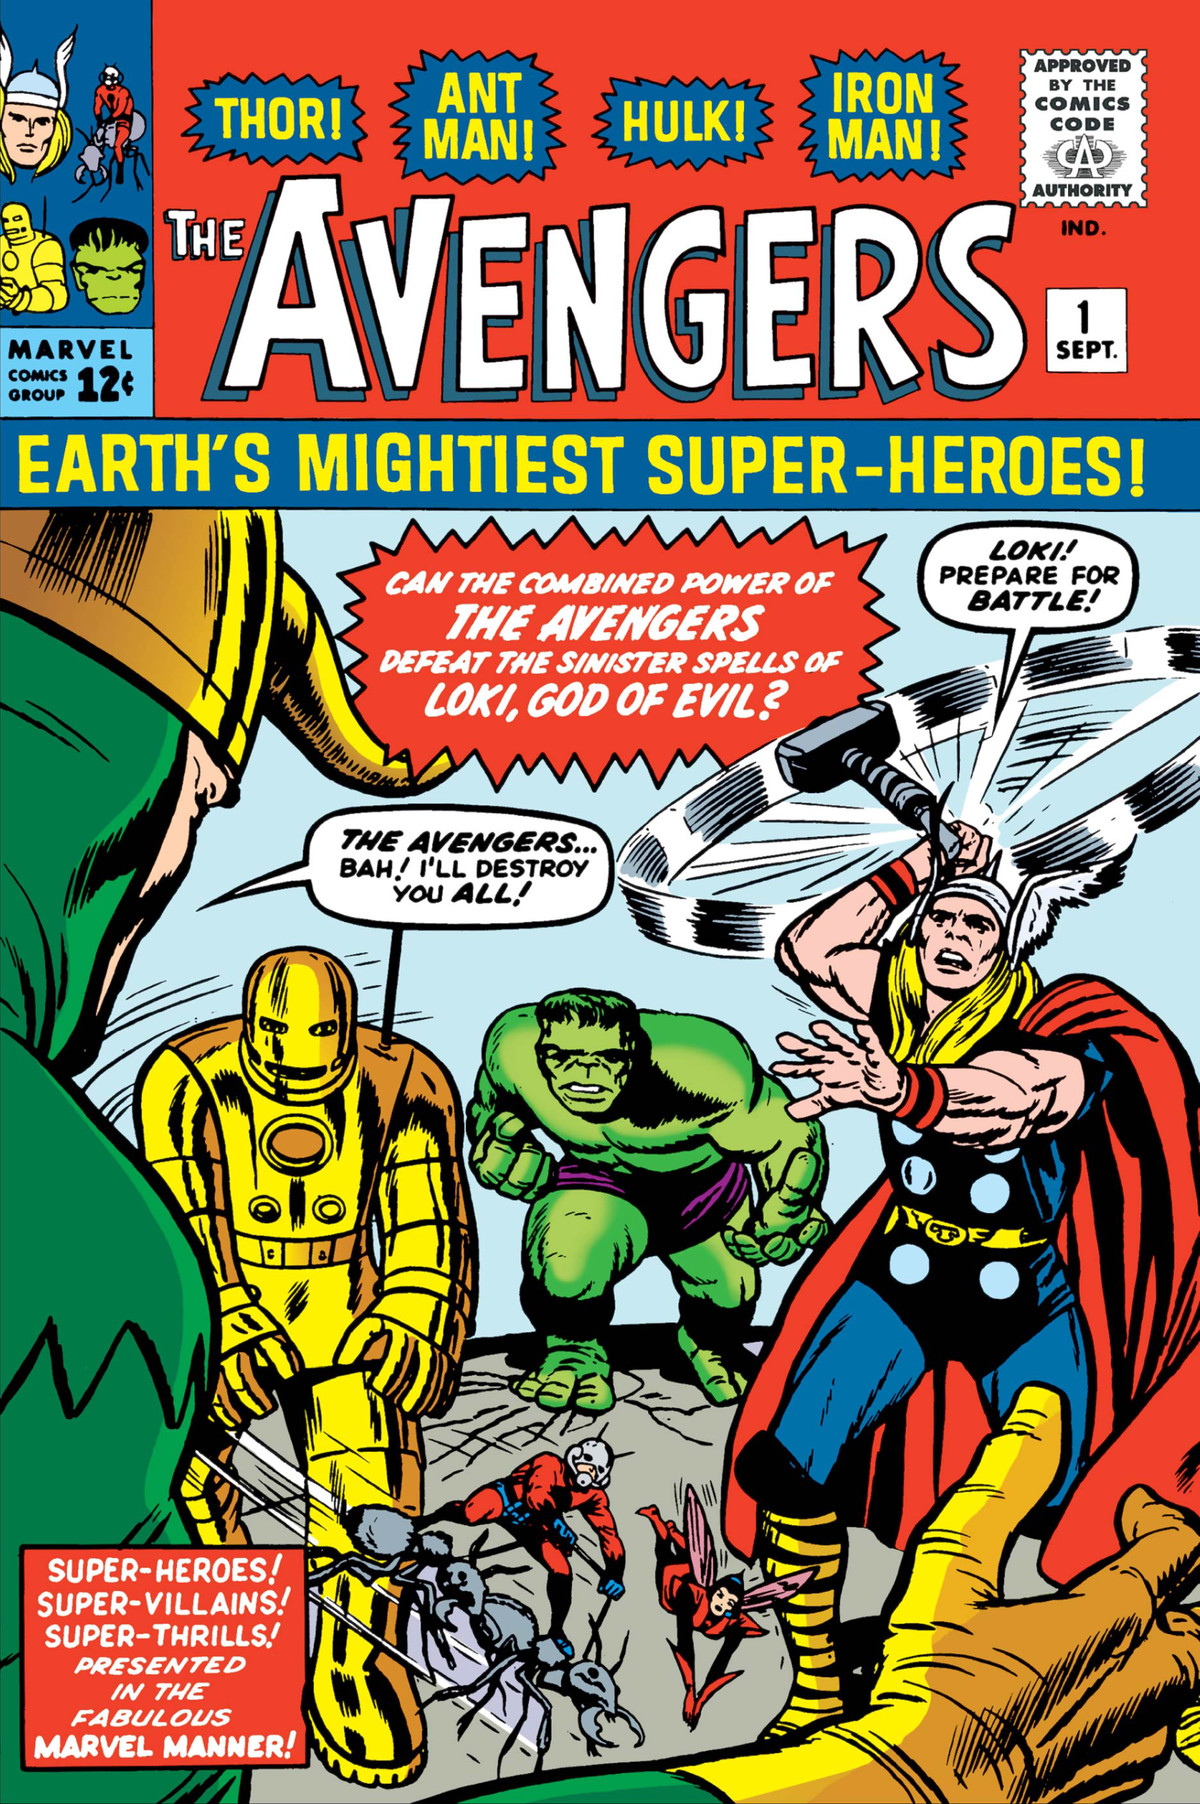 Iron Man, Ant-Man, the Wasp, the Hulk, and Thor square off against Loki on the cover of The Avengers #1, Marvel Comics (1963).